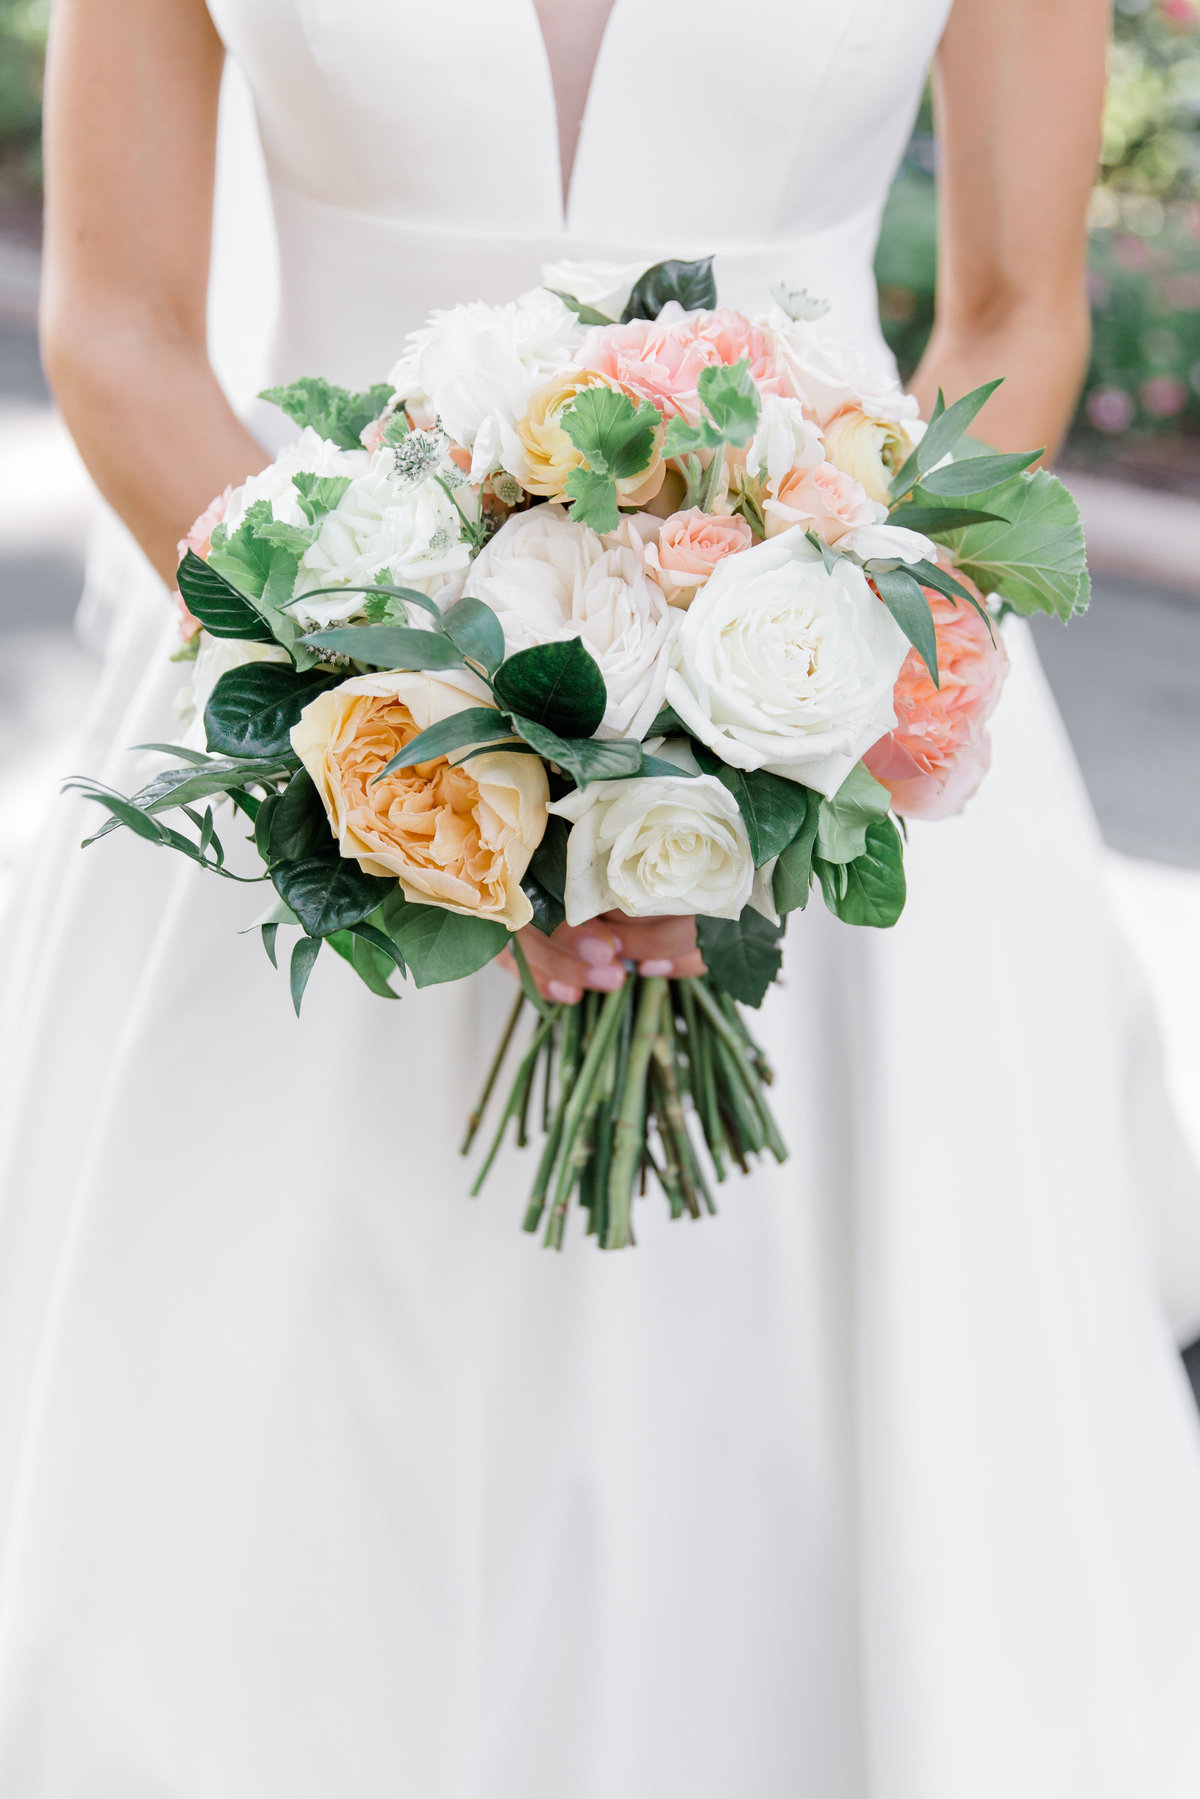 Beautiful peach and white bridal bouquet